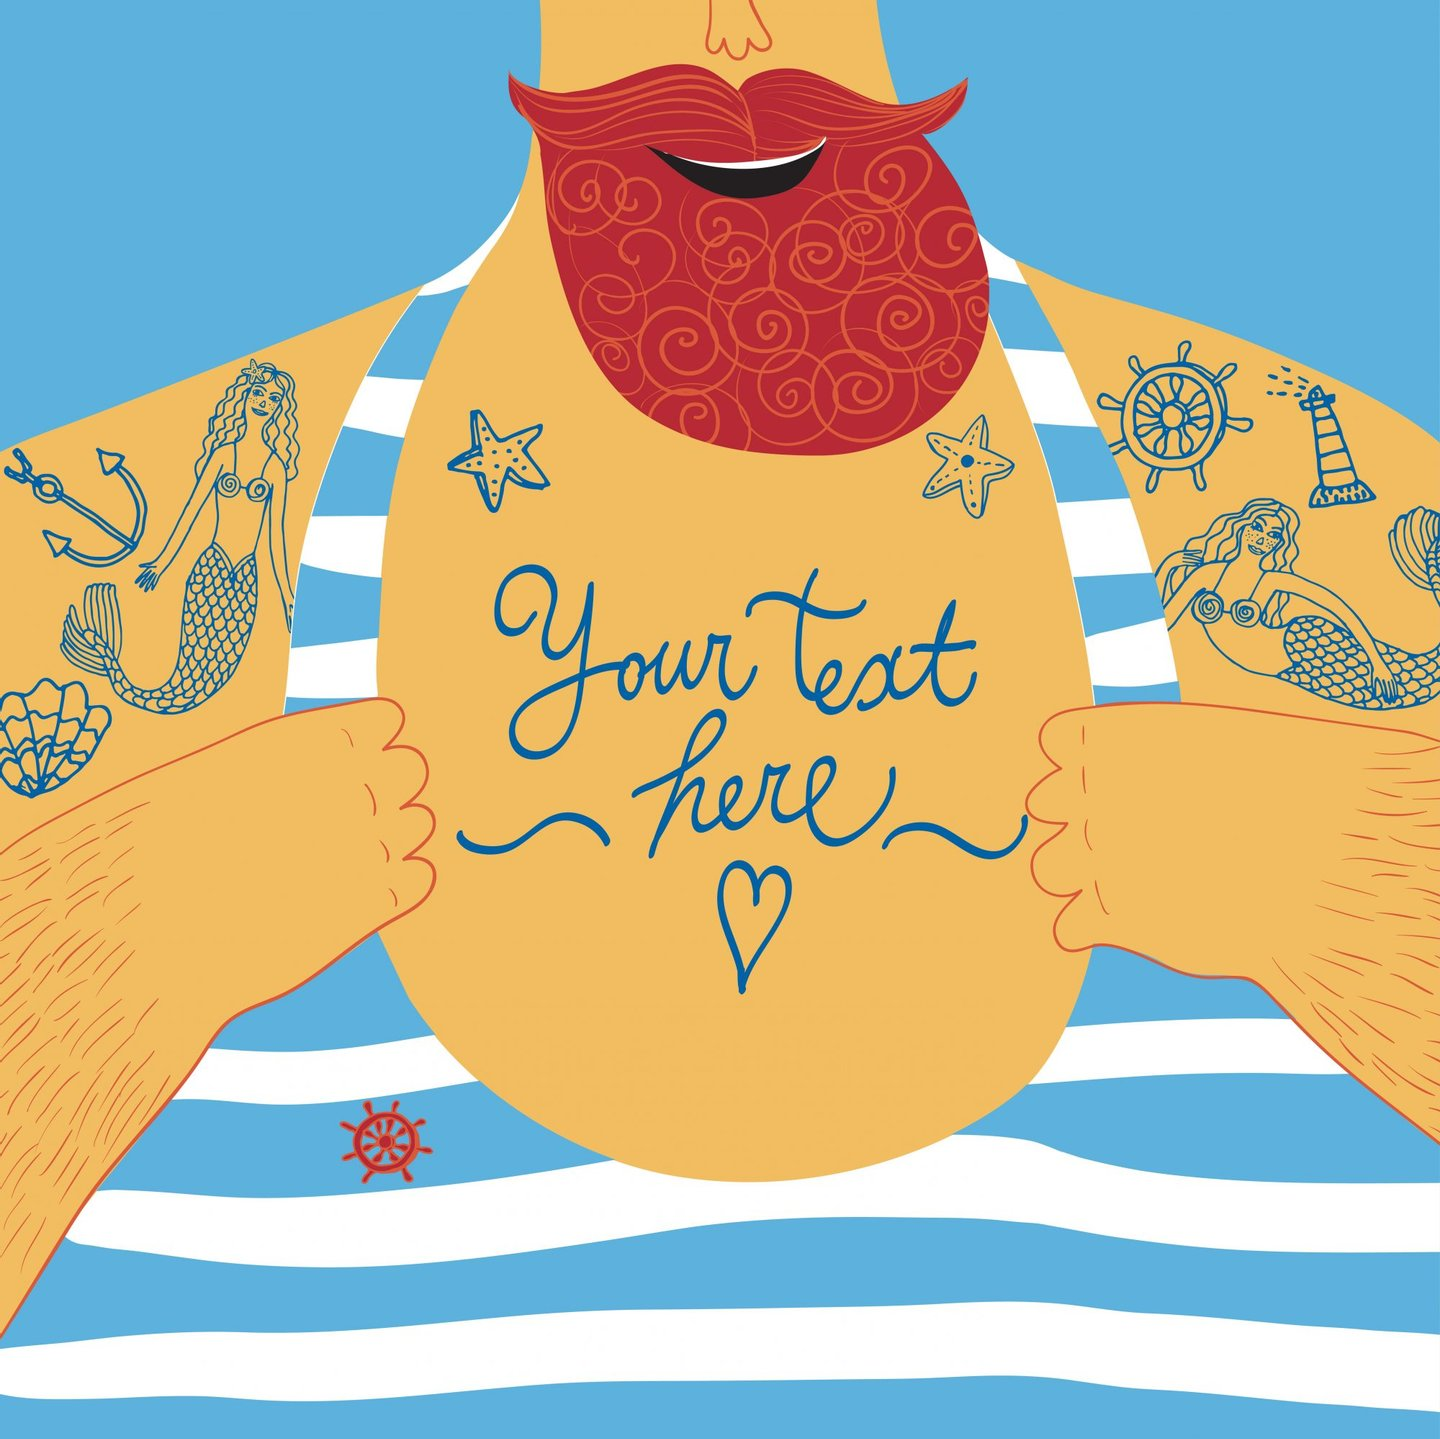 vector, man, illustration, anchor, beard, tattoo, drawing, sea, sailor, male, person, cartoon, chest, strong, smiling, captain, summer, body, adult, marine, nautical, healthy, human, elements, sailing, hand, athlete, strength, muscle, sexy, torso, image, handsome, fisherman, muscles, stylized, text, men, powerful, huge, t-shirt, postcard, mermaid, heart, wheel, seashell,